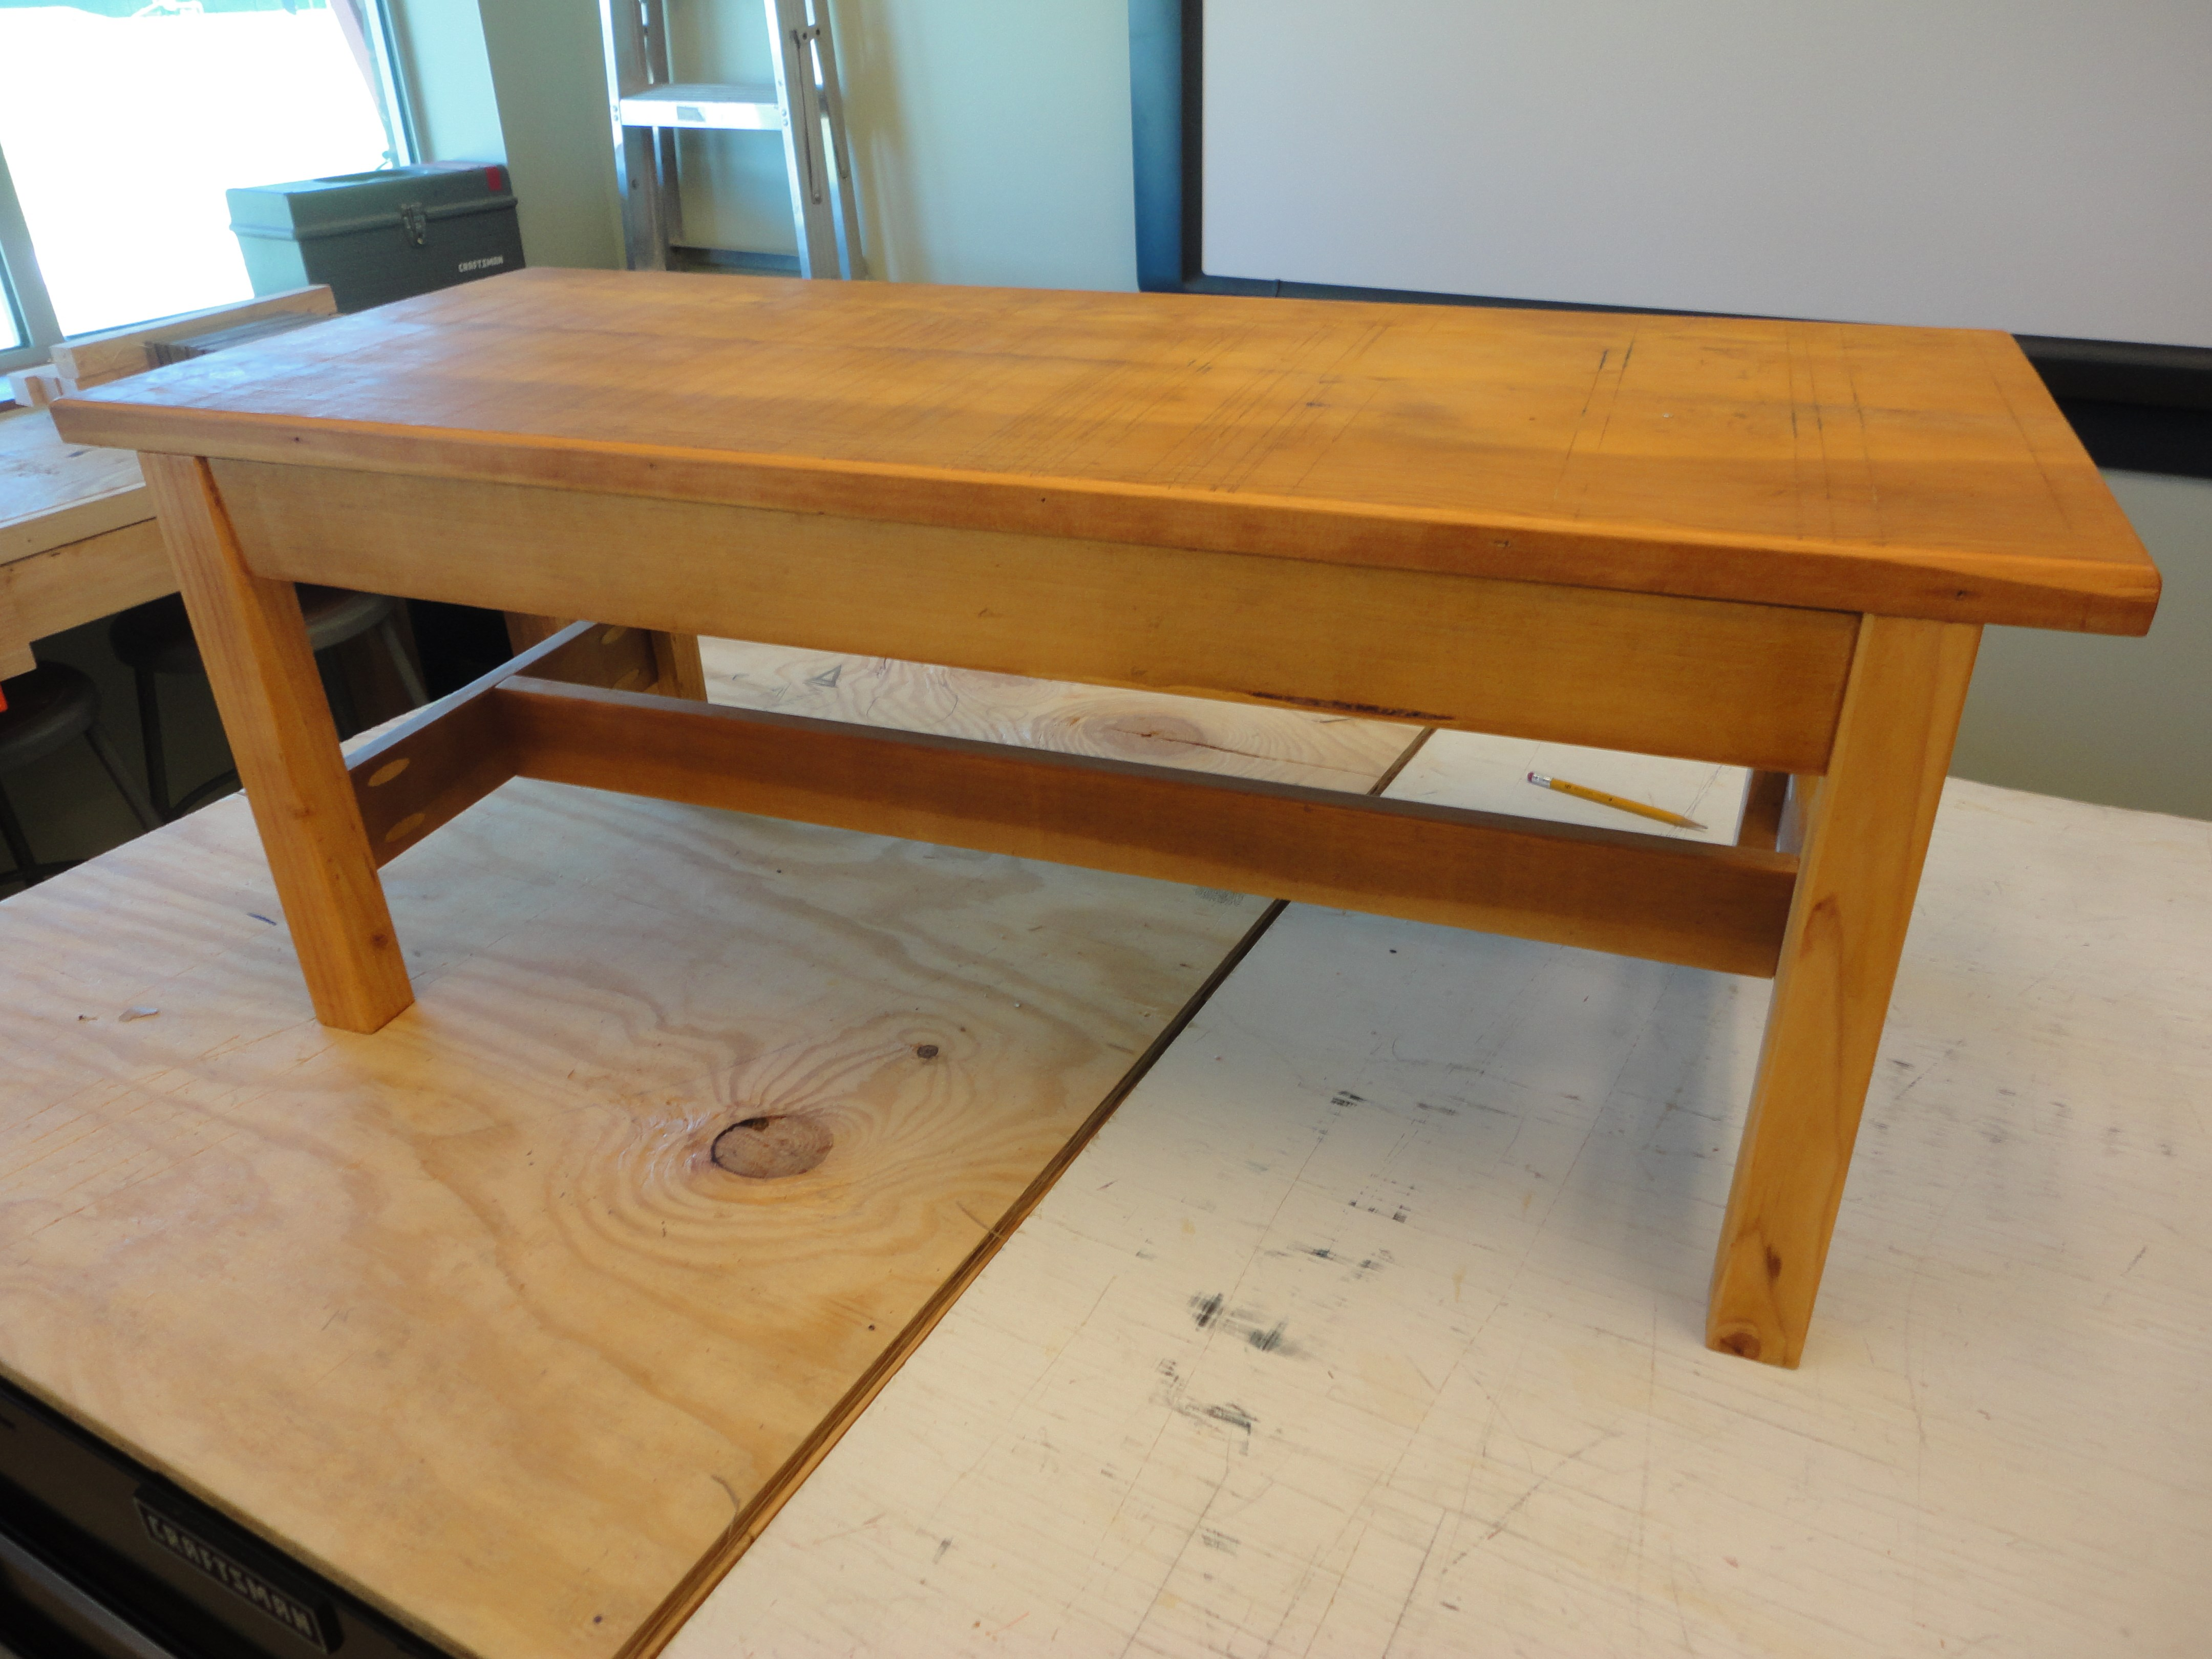 This Week in the Classroom The Simple Coffee Table